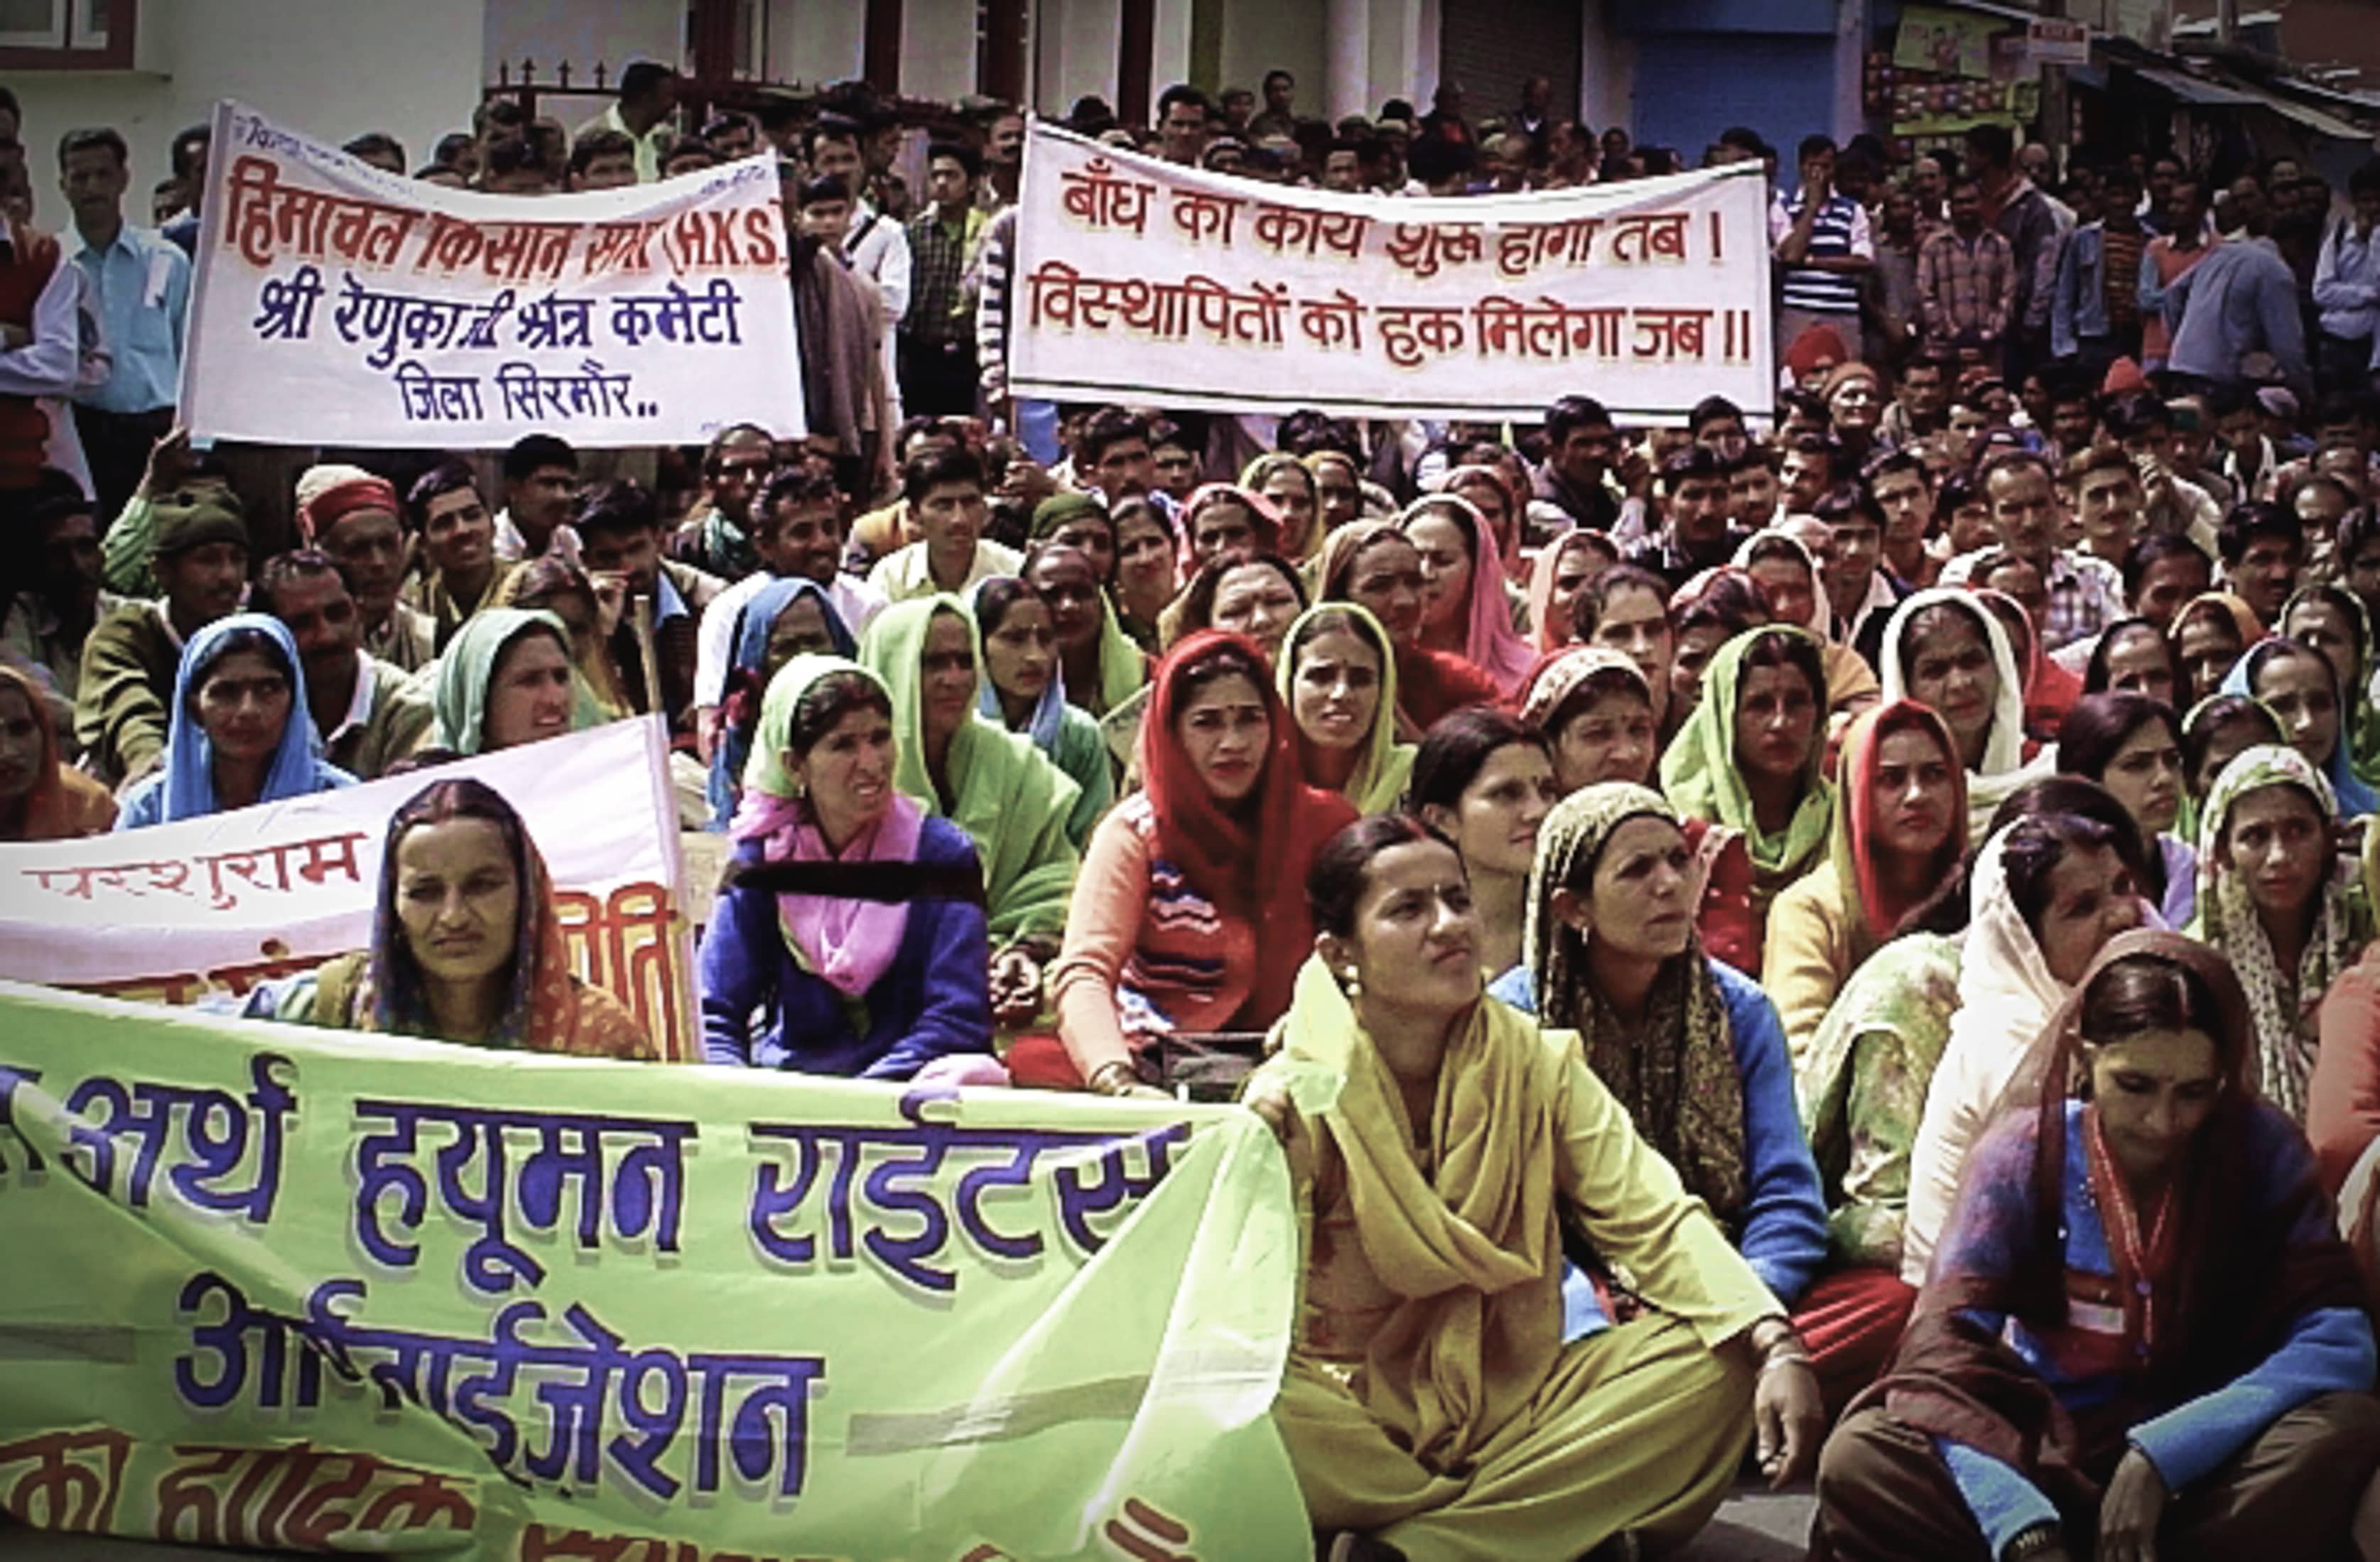 A protest by locals and members of environmental organisations in Renuka Valley, September 2010. Credit: Sumit Mahar